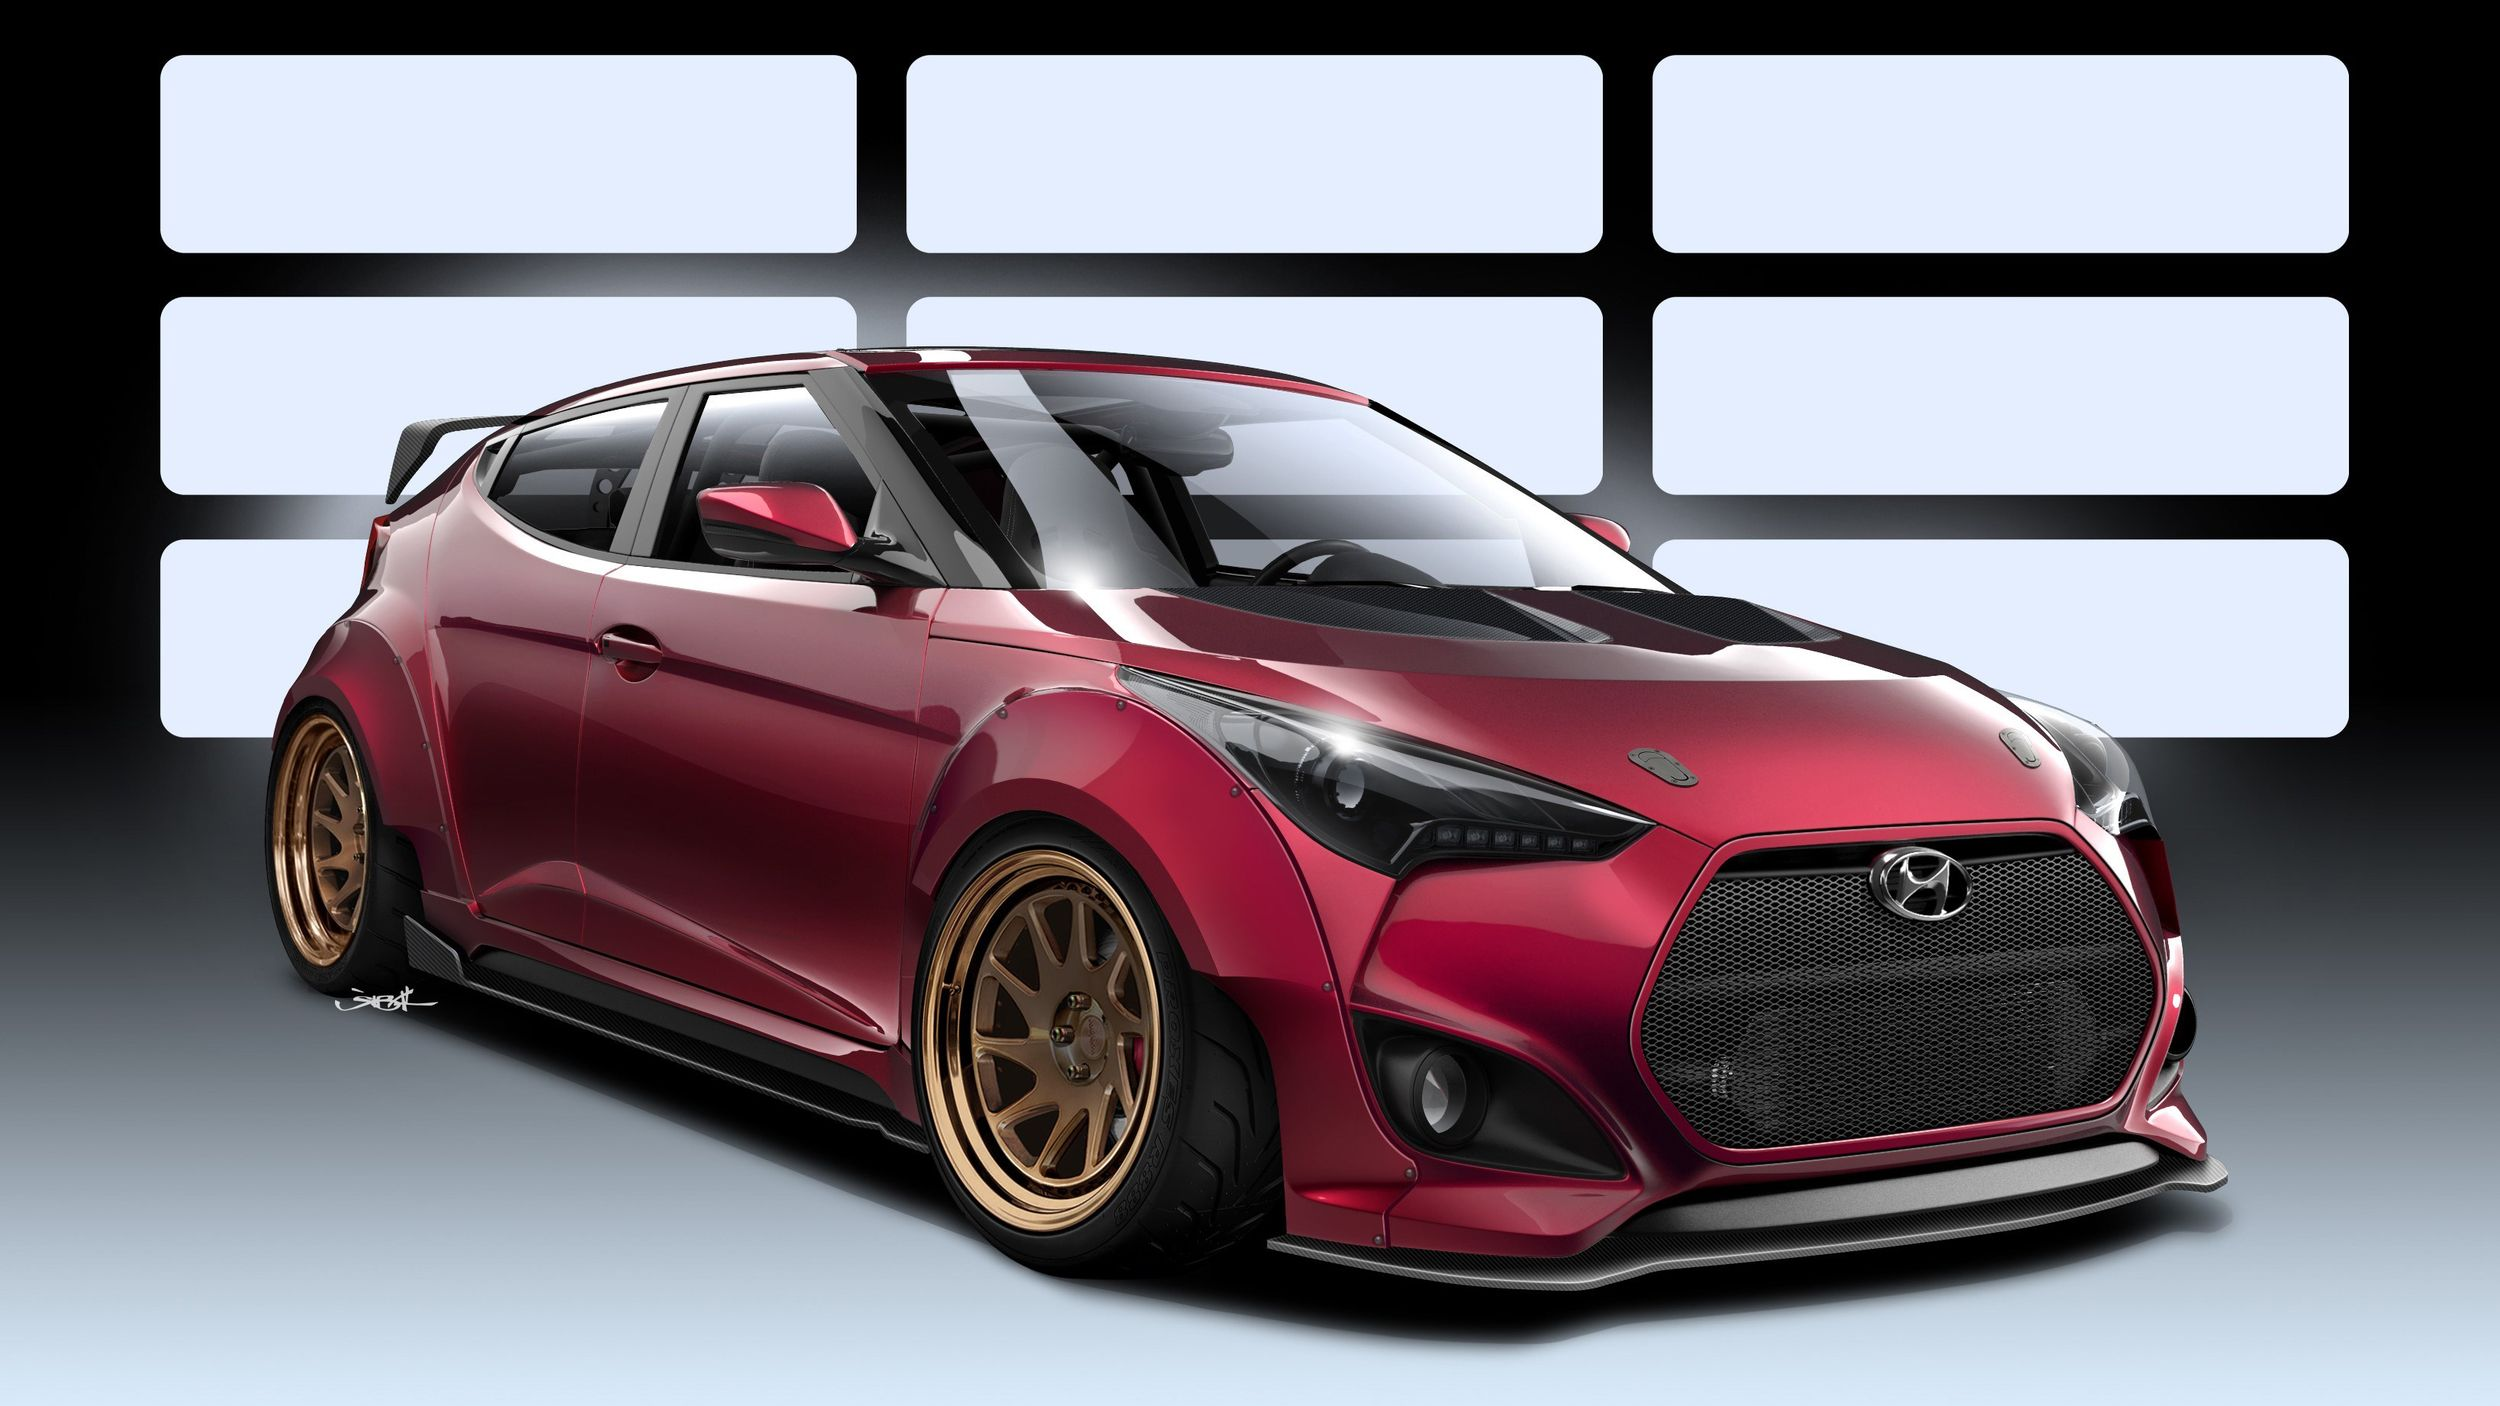 fl veloster spec rspectampa great the good image rspec r hyundai tampa with flimage turbo is